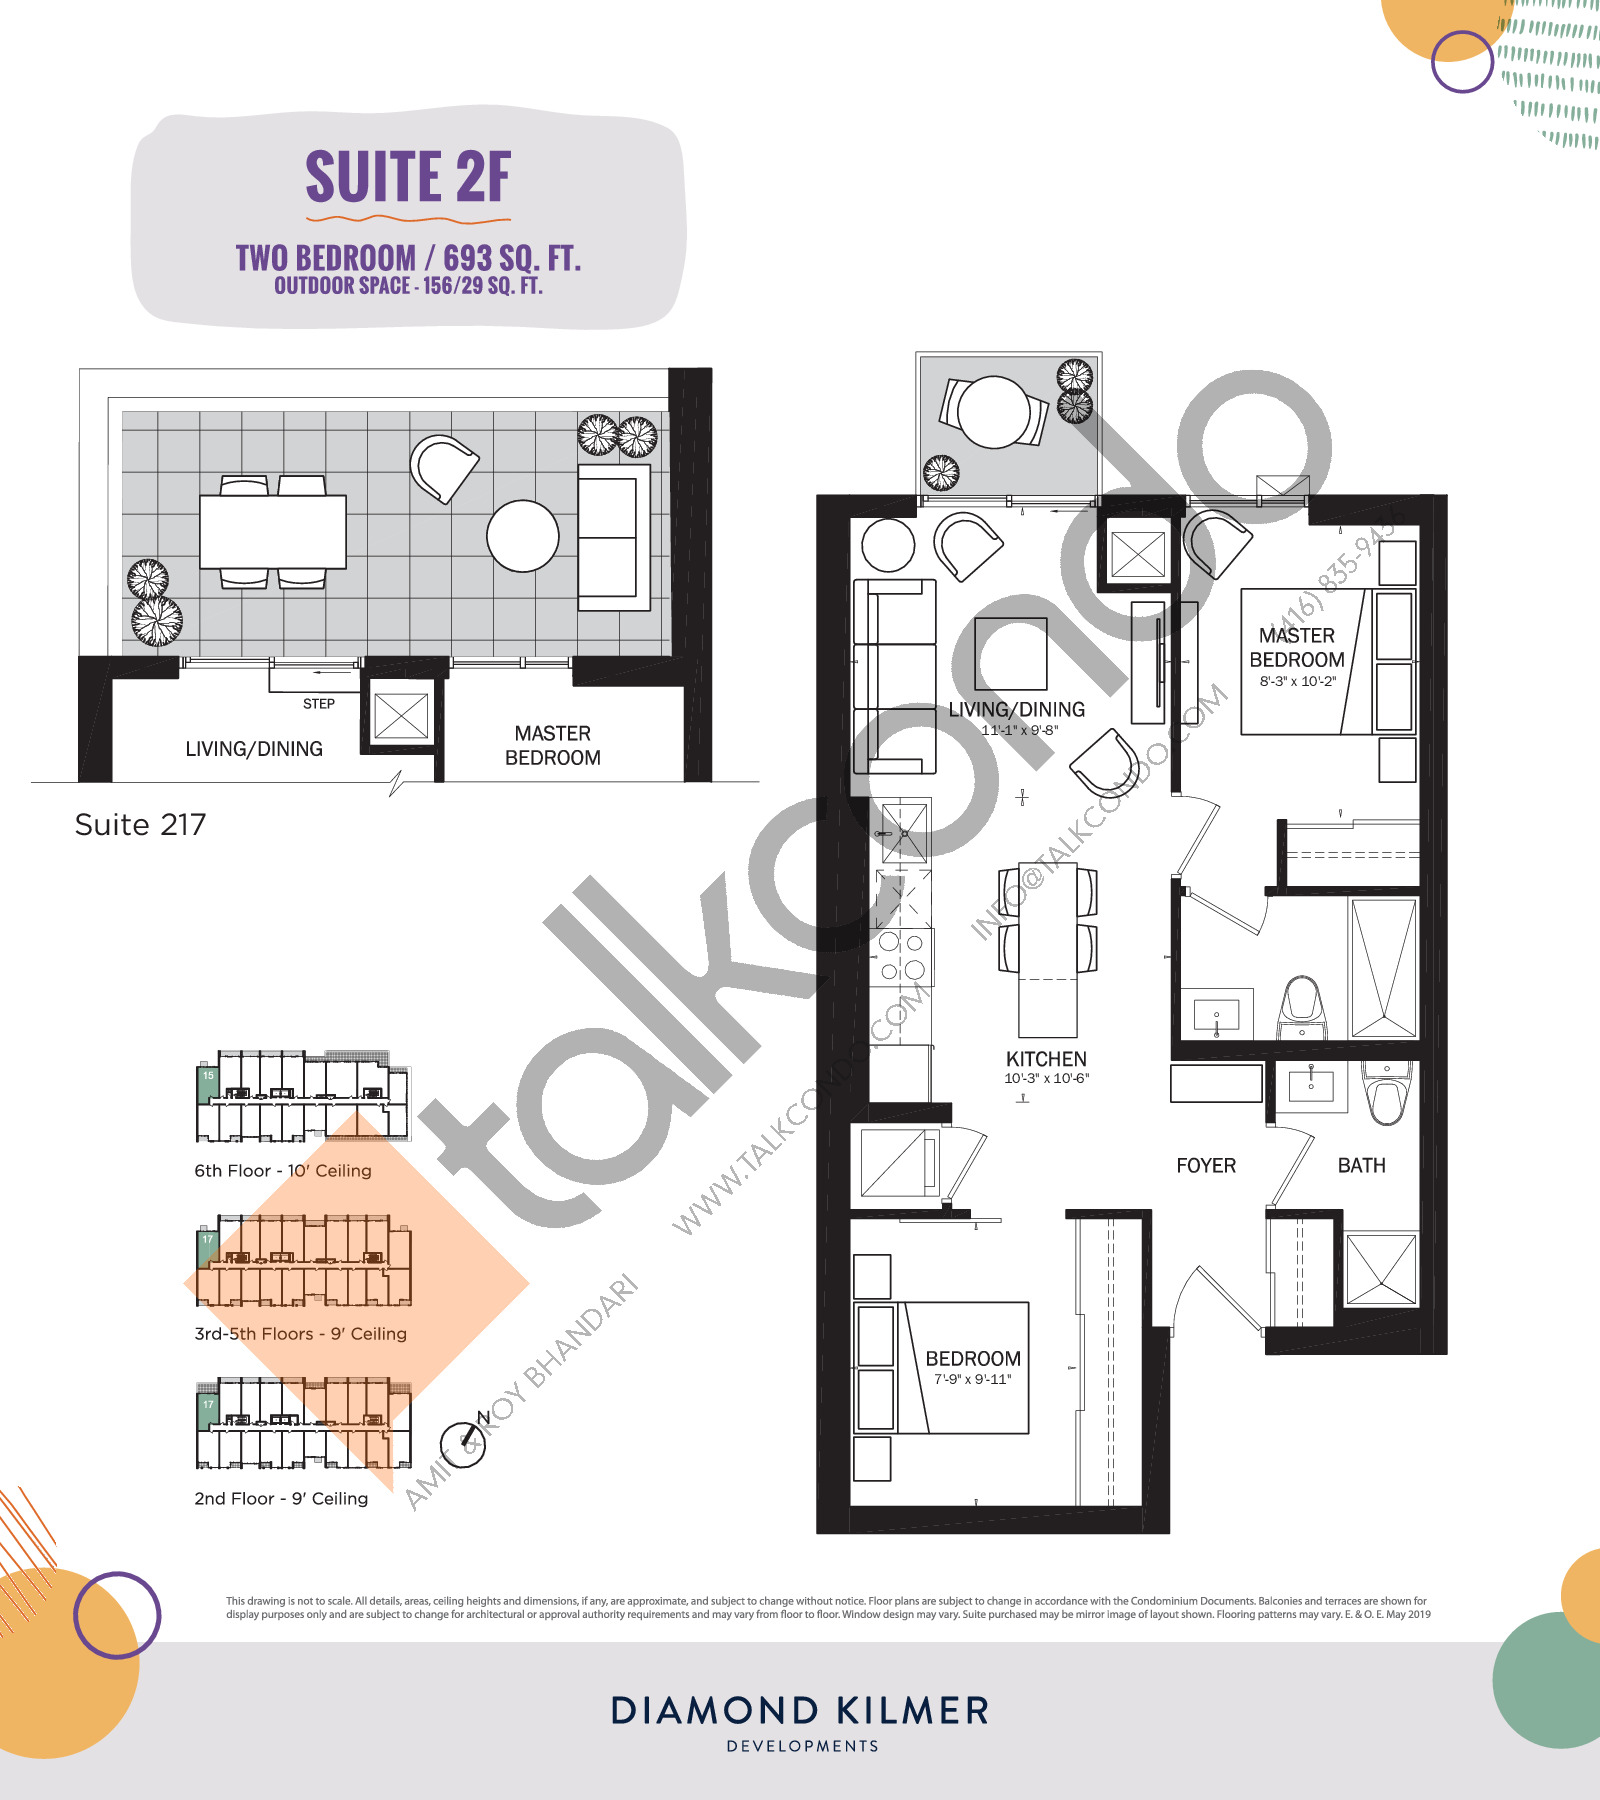 2F Floor Plan at Reunion Crossing Condos & Urban Towns - 693 sq.ft